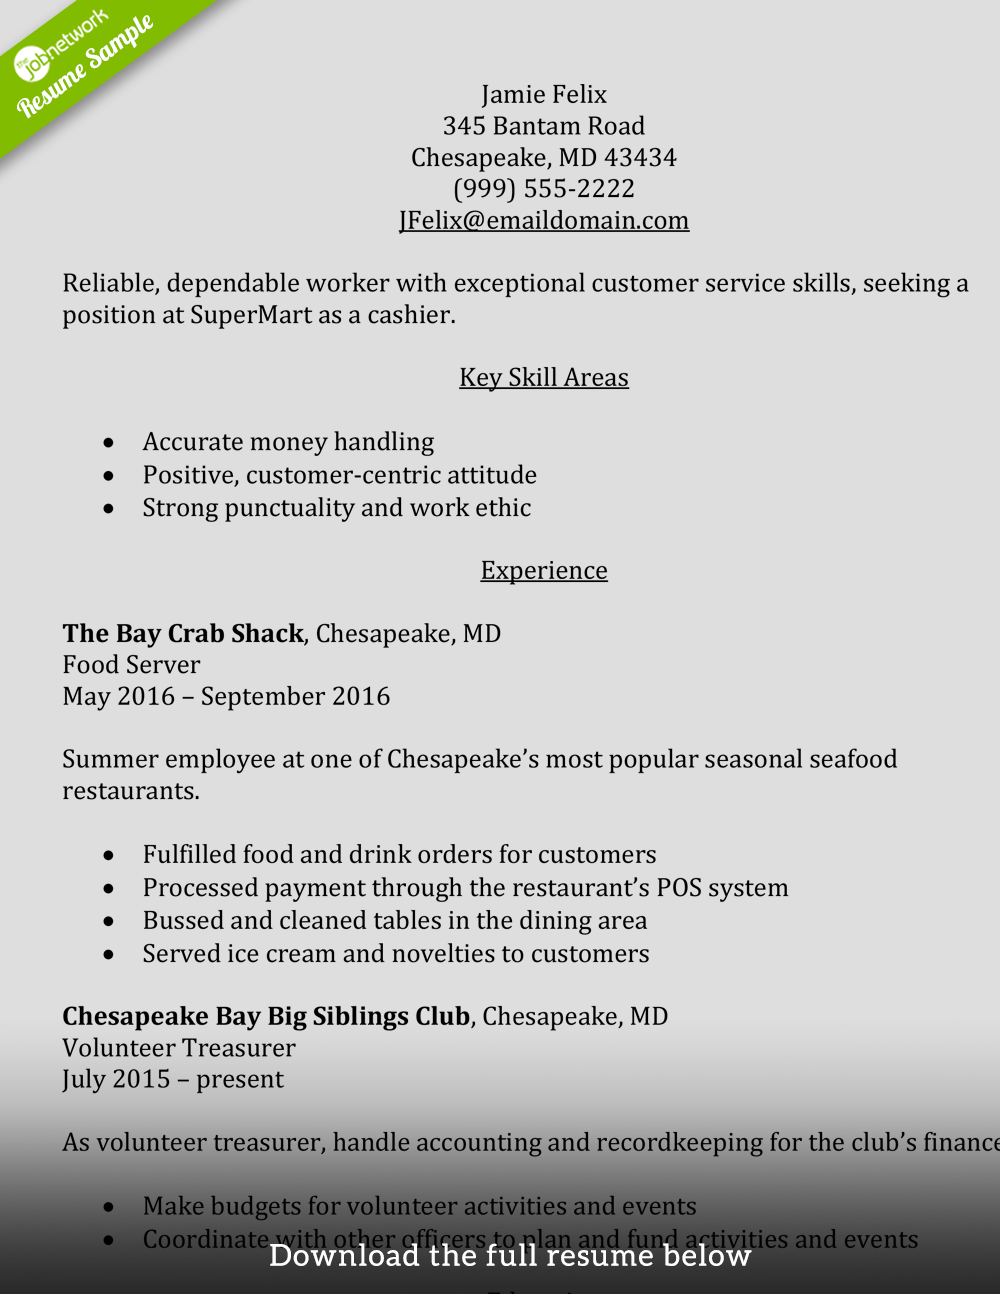 general resume objective examples for cashier